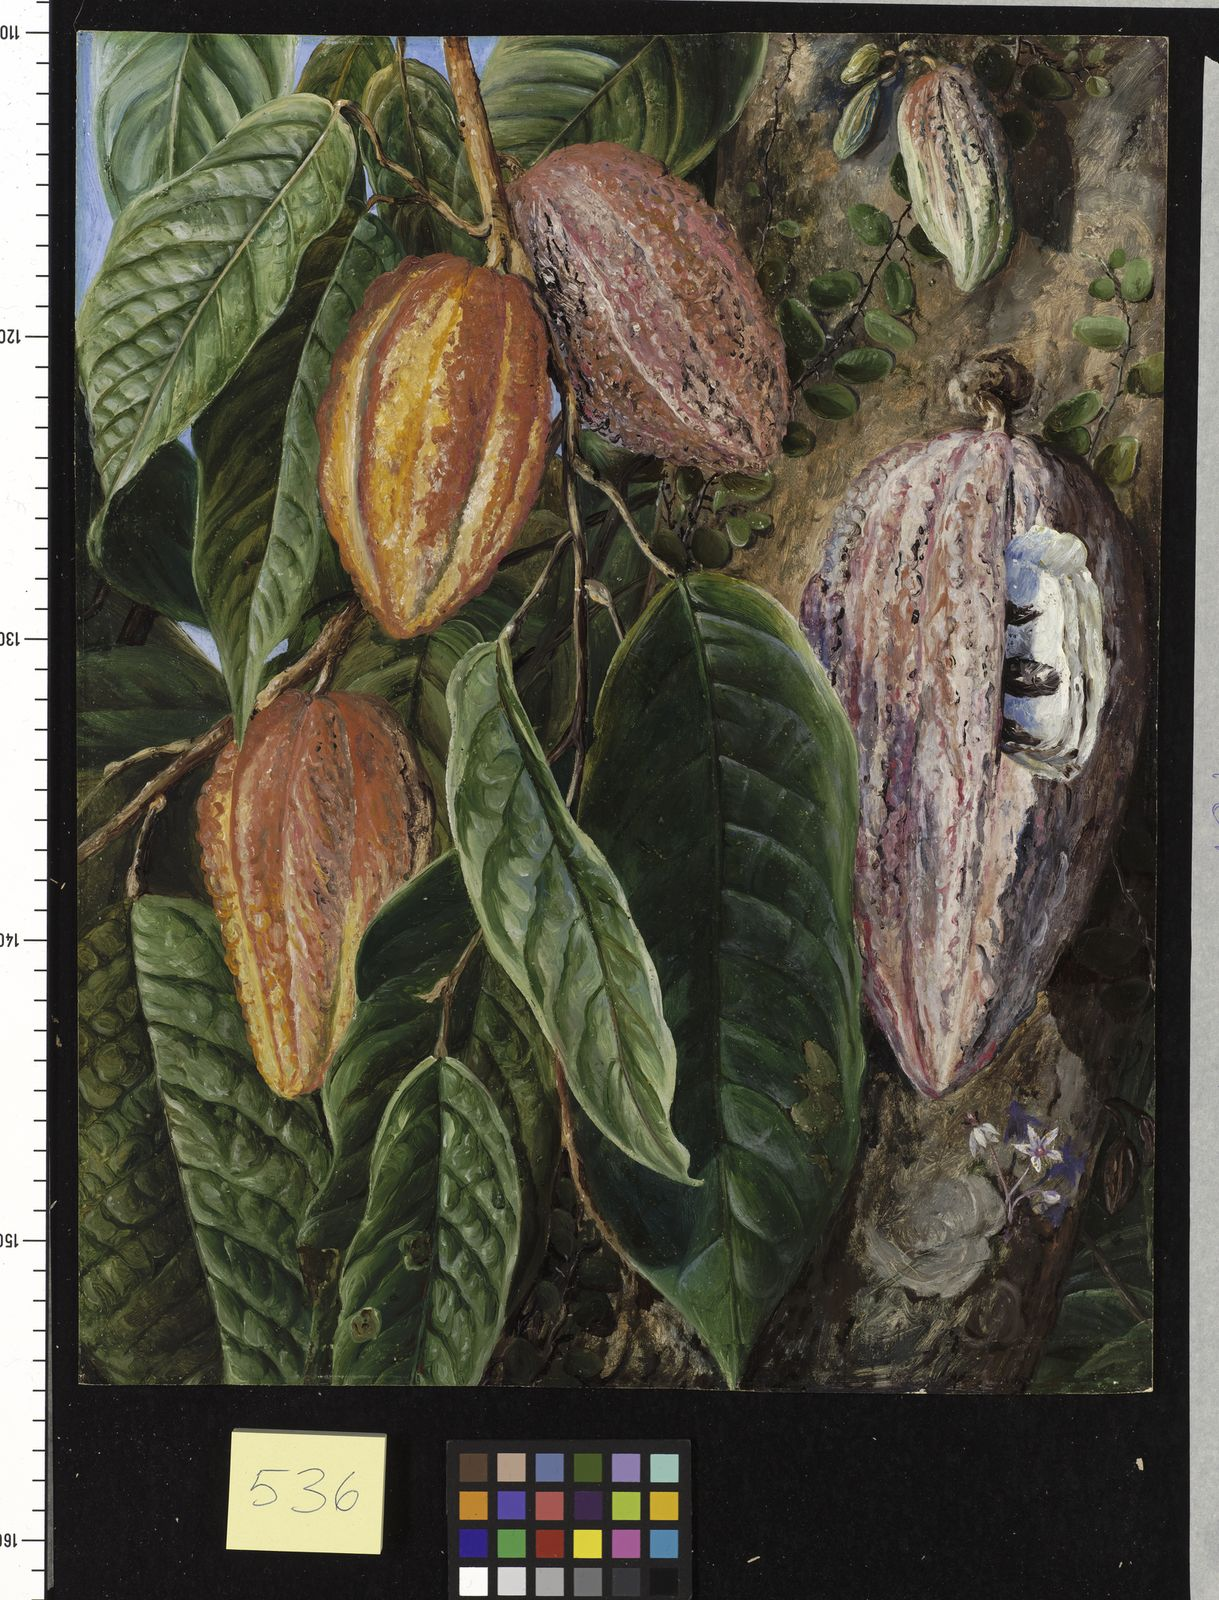 Theobroma cacao l plants of the world online kew science ksp ntk laa sciox Image collections